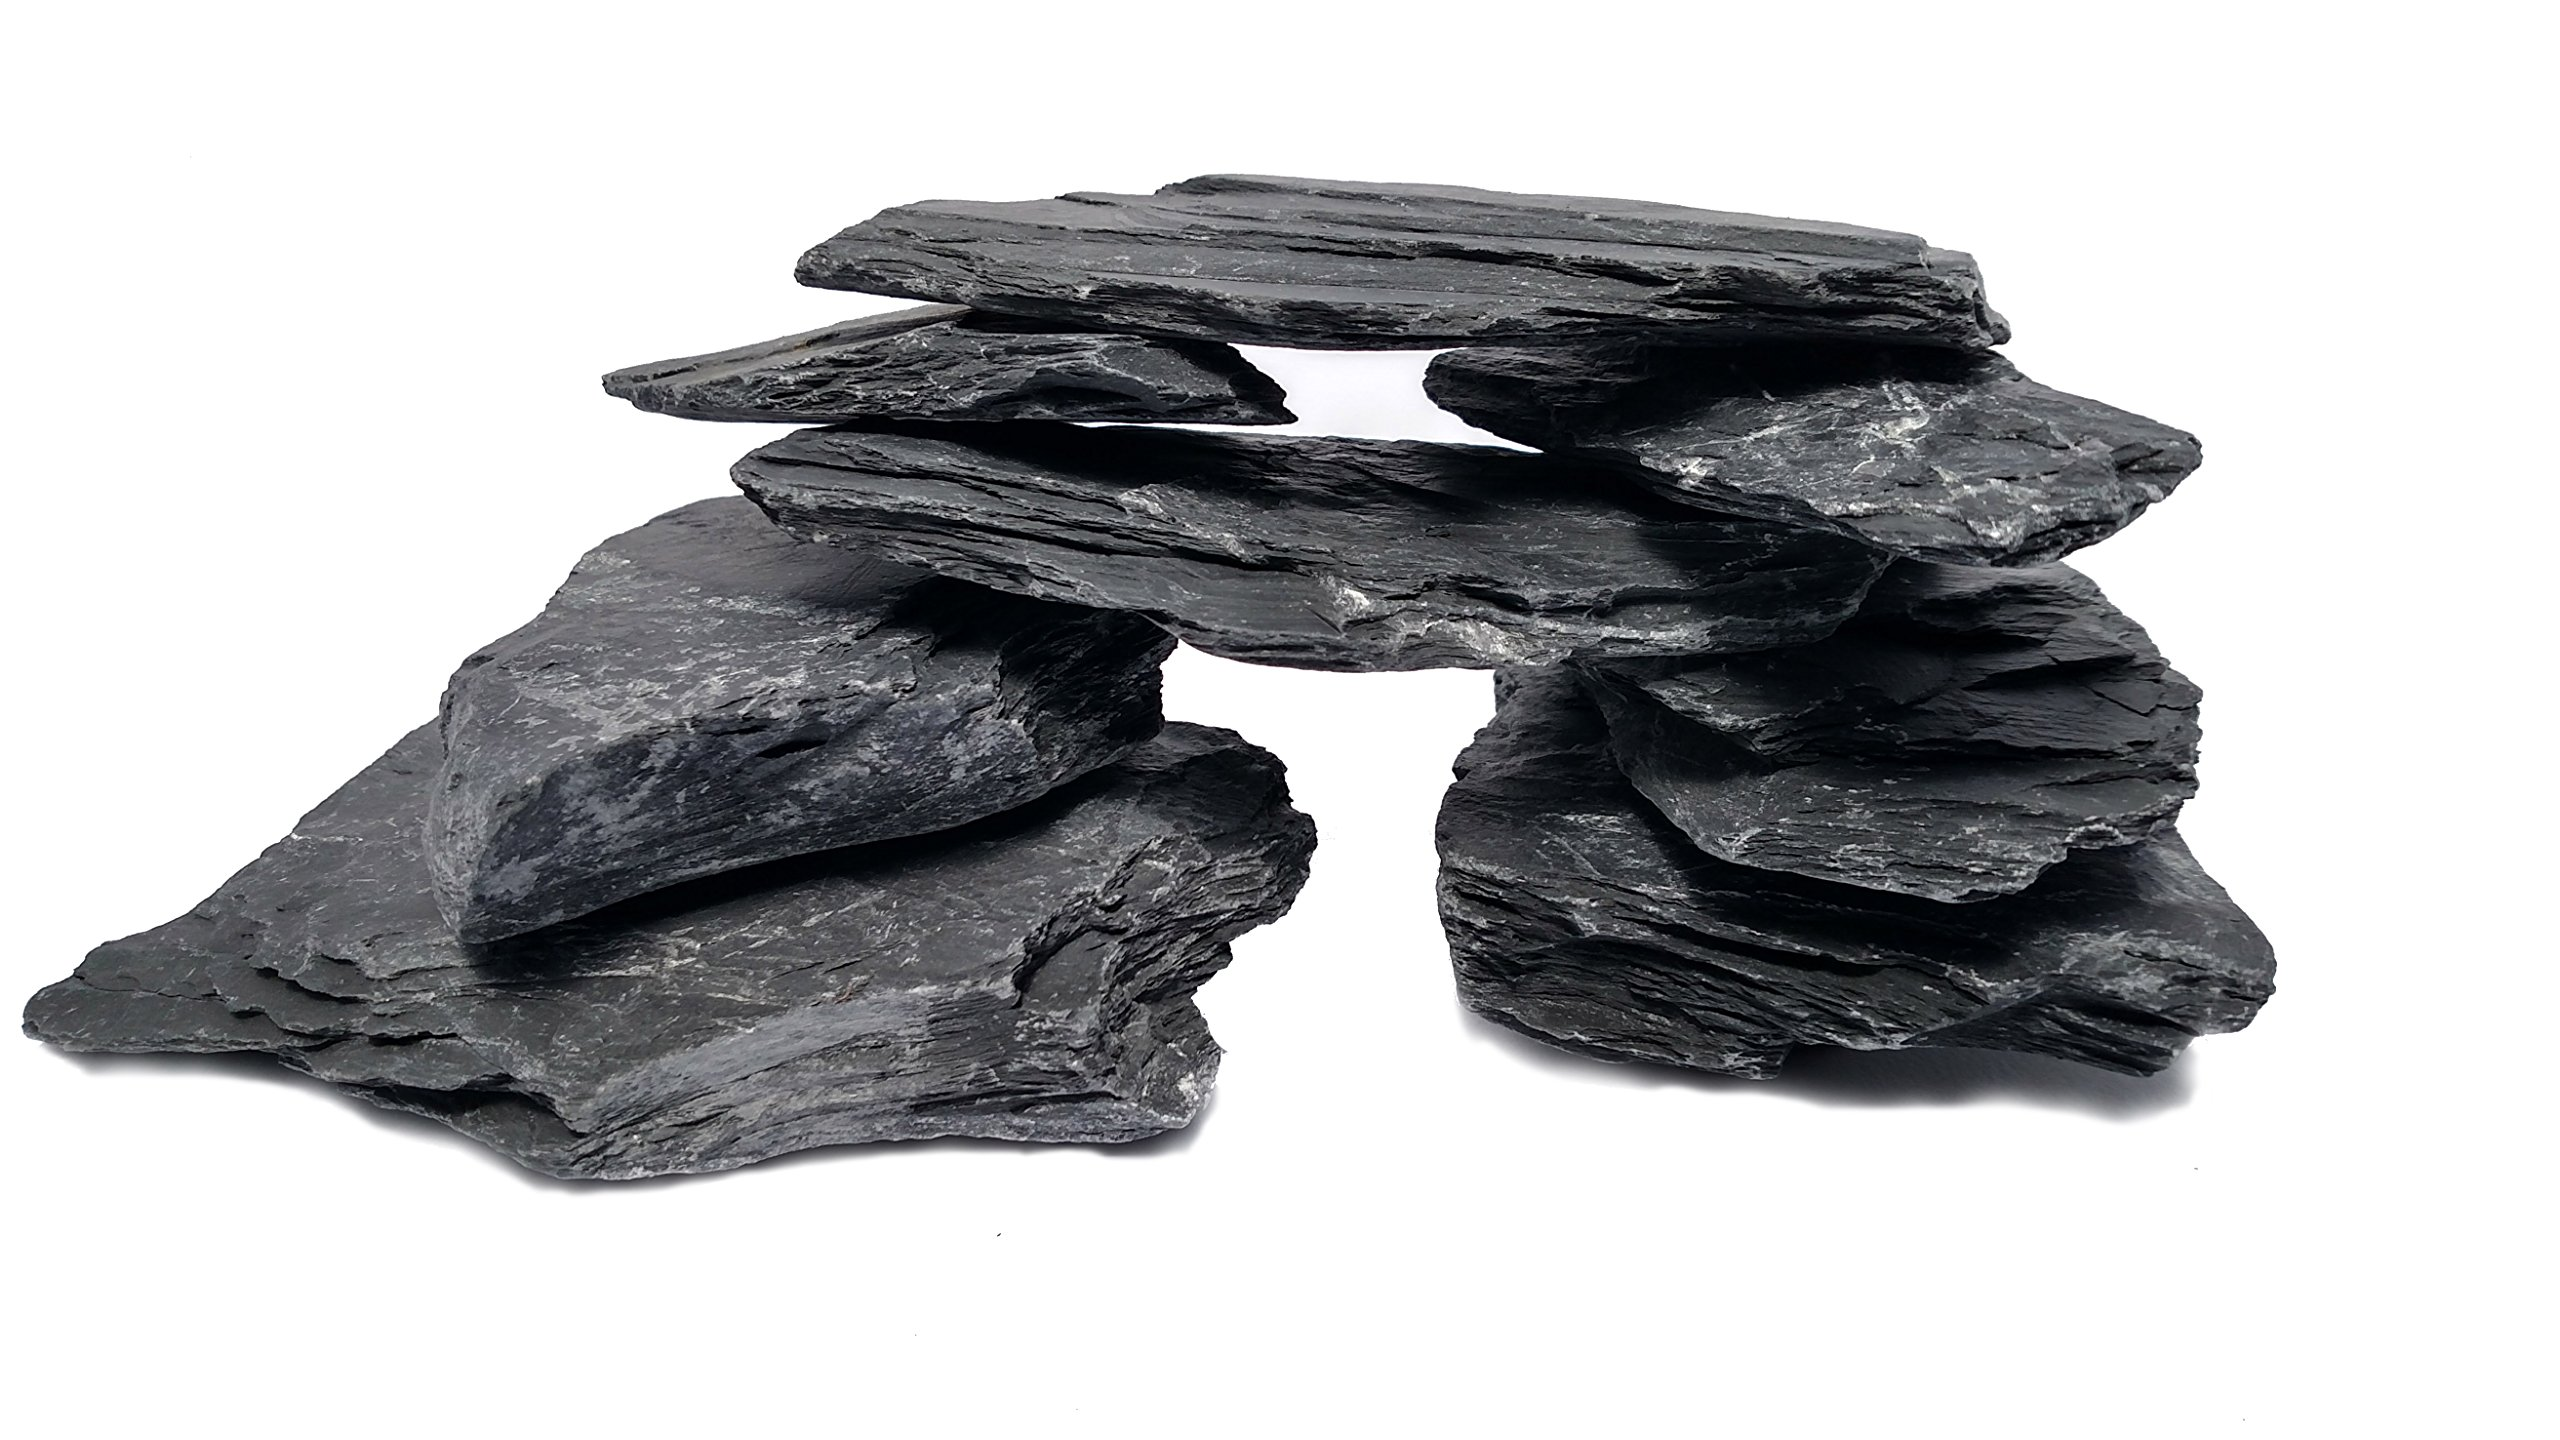 Natural Slate - Large 5 To 7 Inch Stones. PH Neutral. Perfect for Aquascaping and Igwami Aquariums, Reptile and Amphibian Enclosures, Stone Carving and Crafts (10 lbs) by Small World Slate and Stone